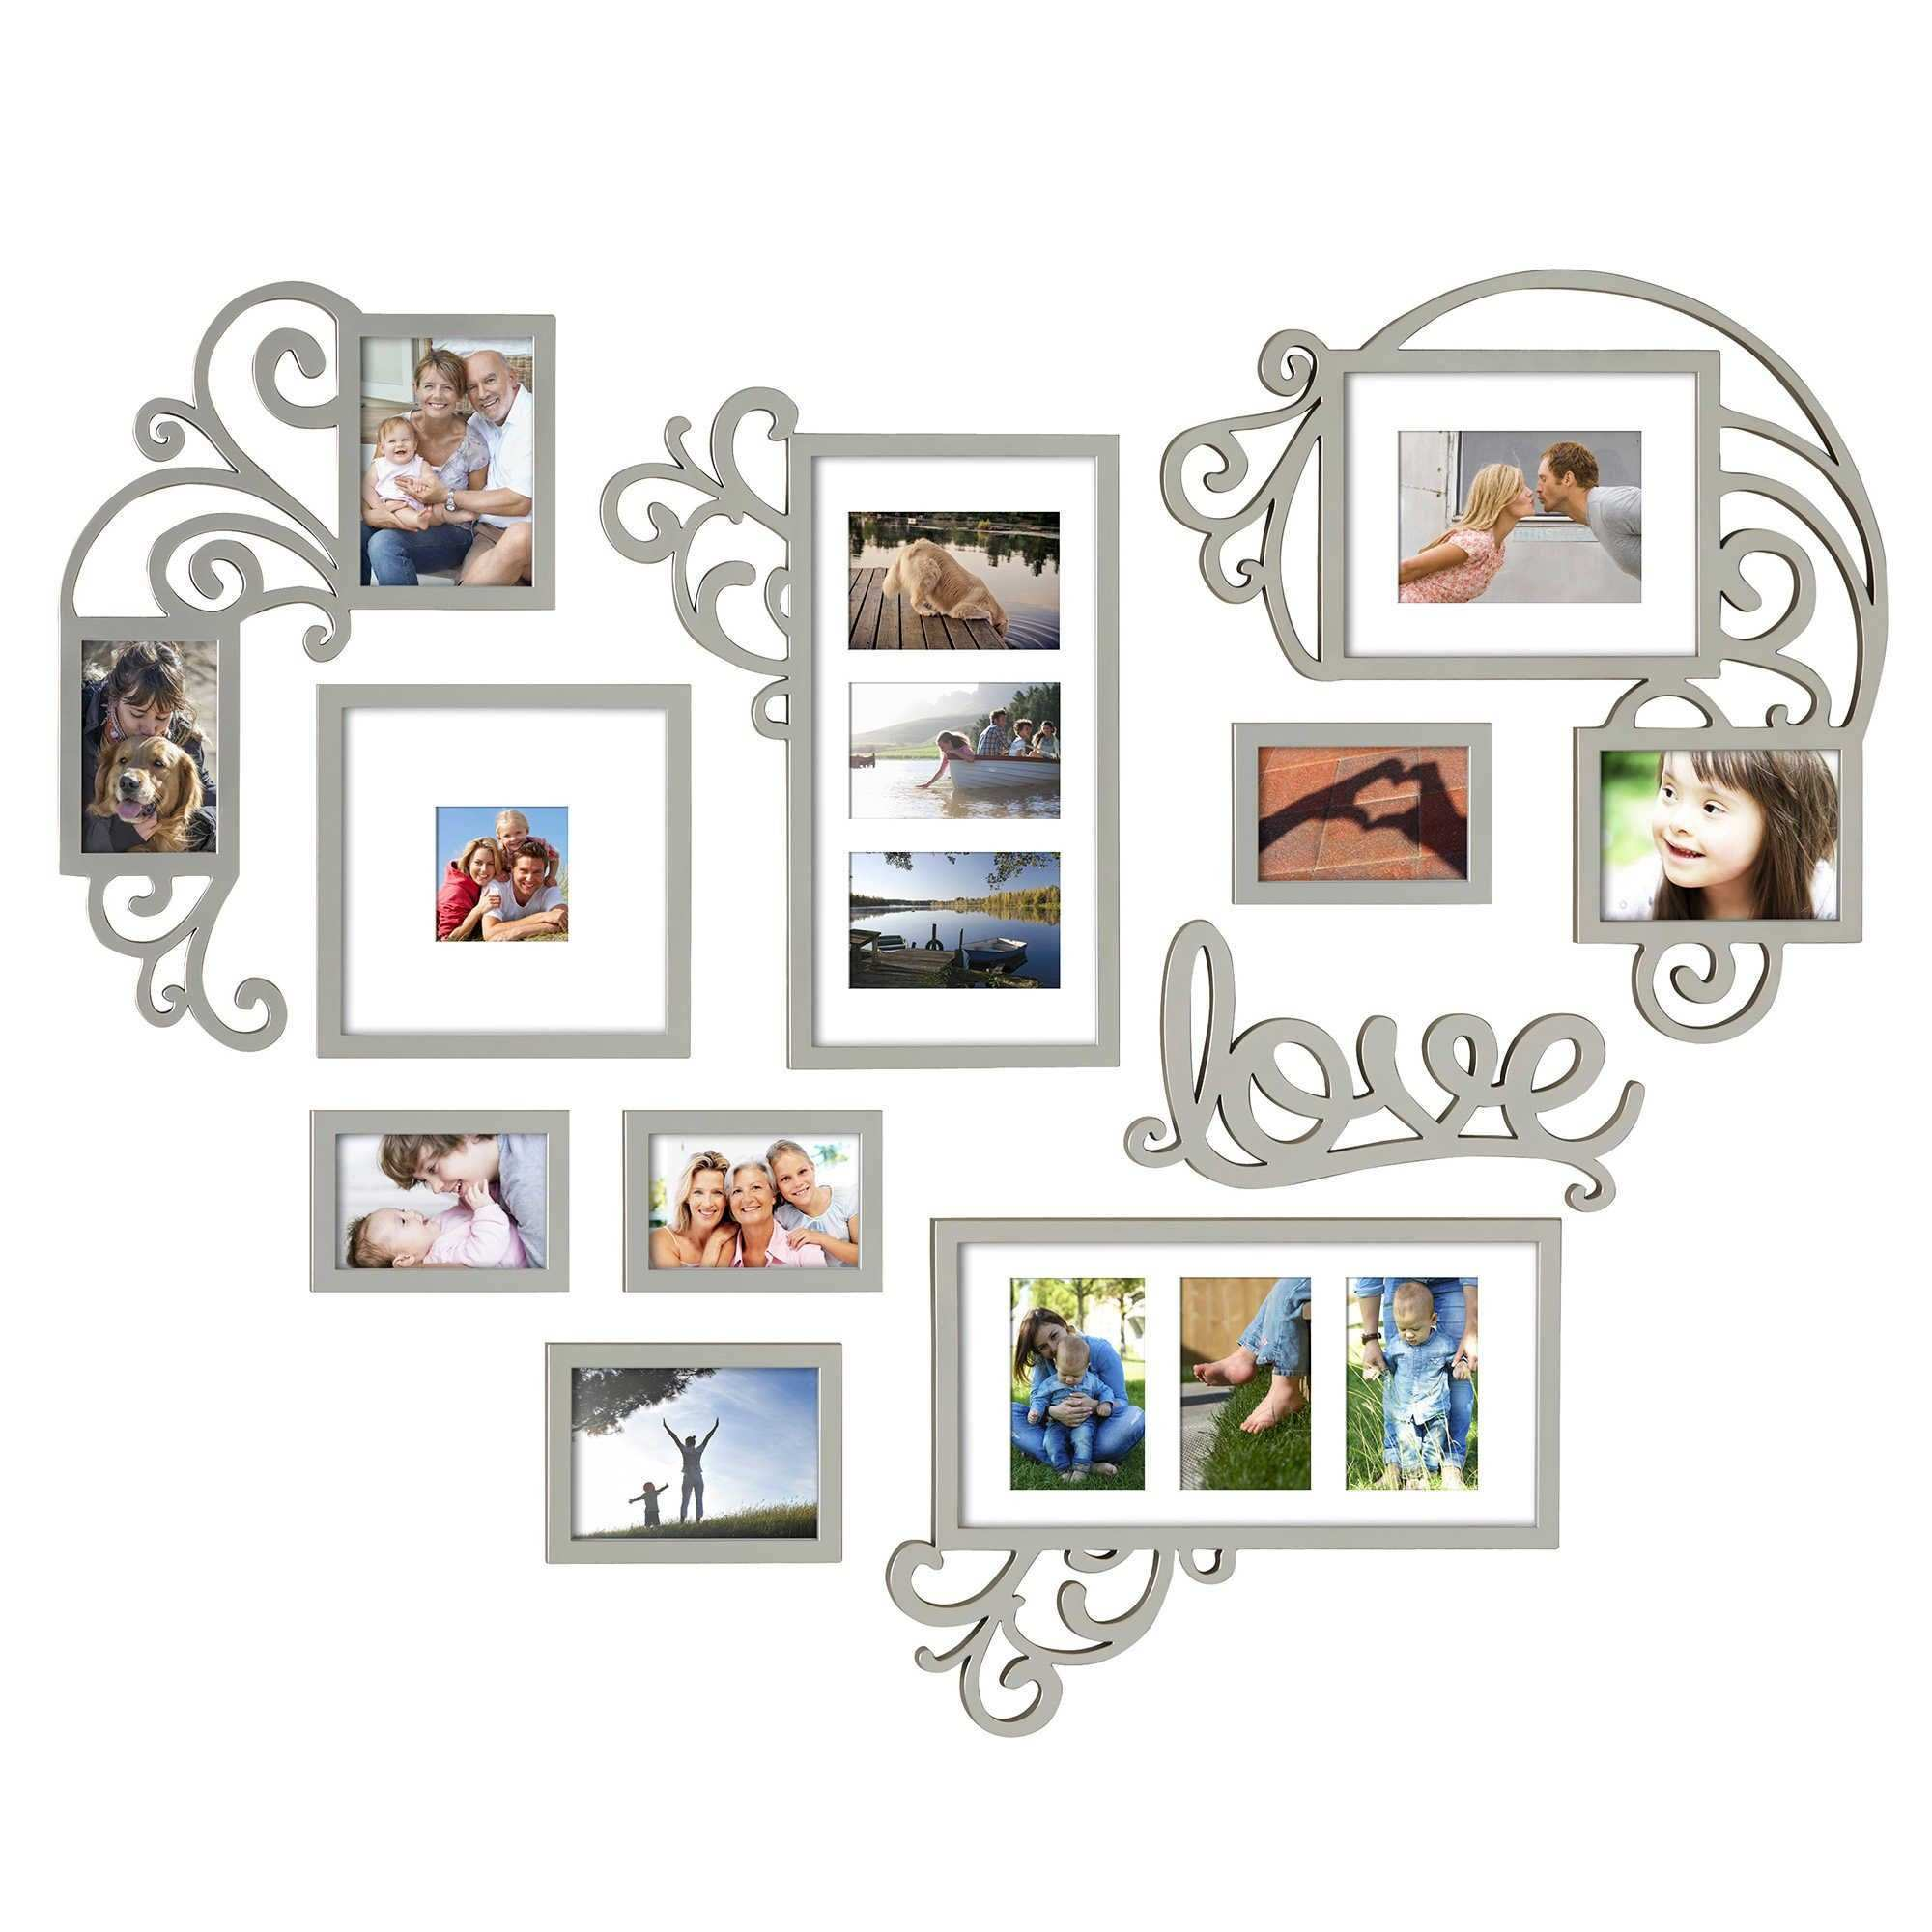 Elegant picture frame set wall gallery wall art ideas - Wall gallery frame set ideas ...